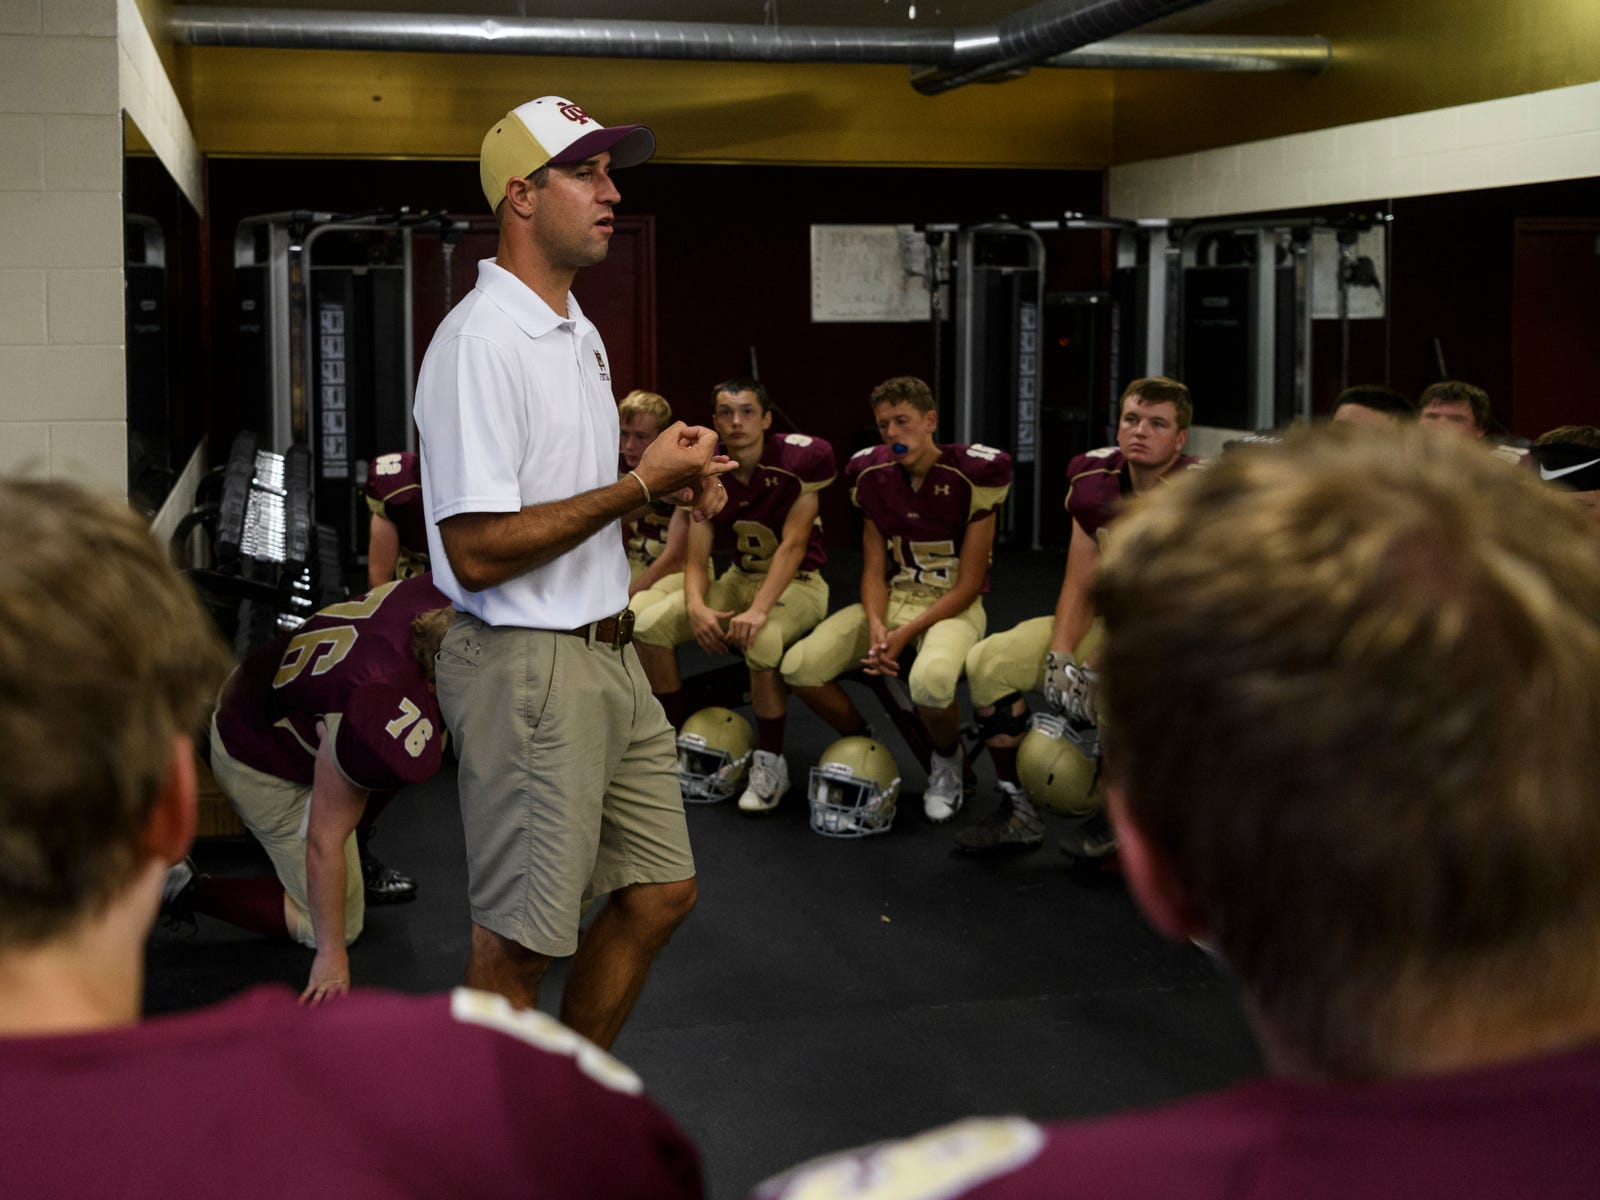 Mount Carmel Head Coach Michael Brewer preps his team in the locker room before taking on the Washington Hatchets at Riverview Stadium, known as the Snake Pit, in Mount Carmel, Ill., Friday, Sept. 21, 2018. The Golden Aces defeated the Hatchets 61-20.